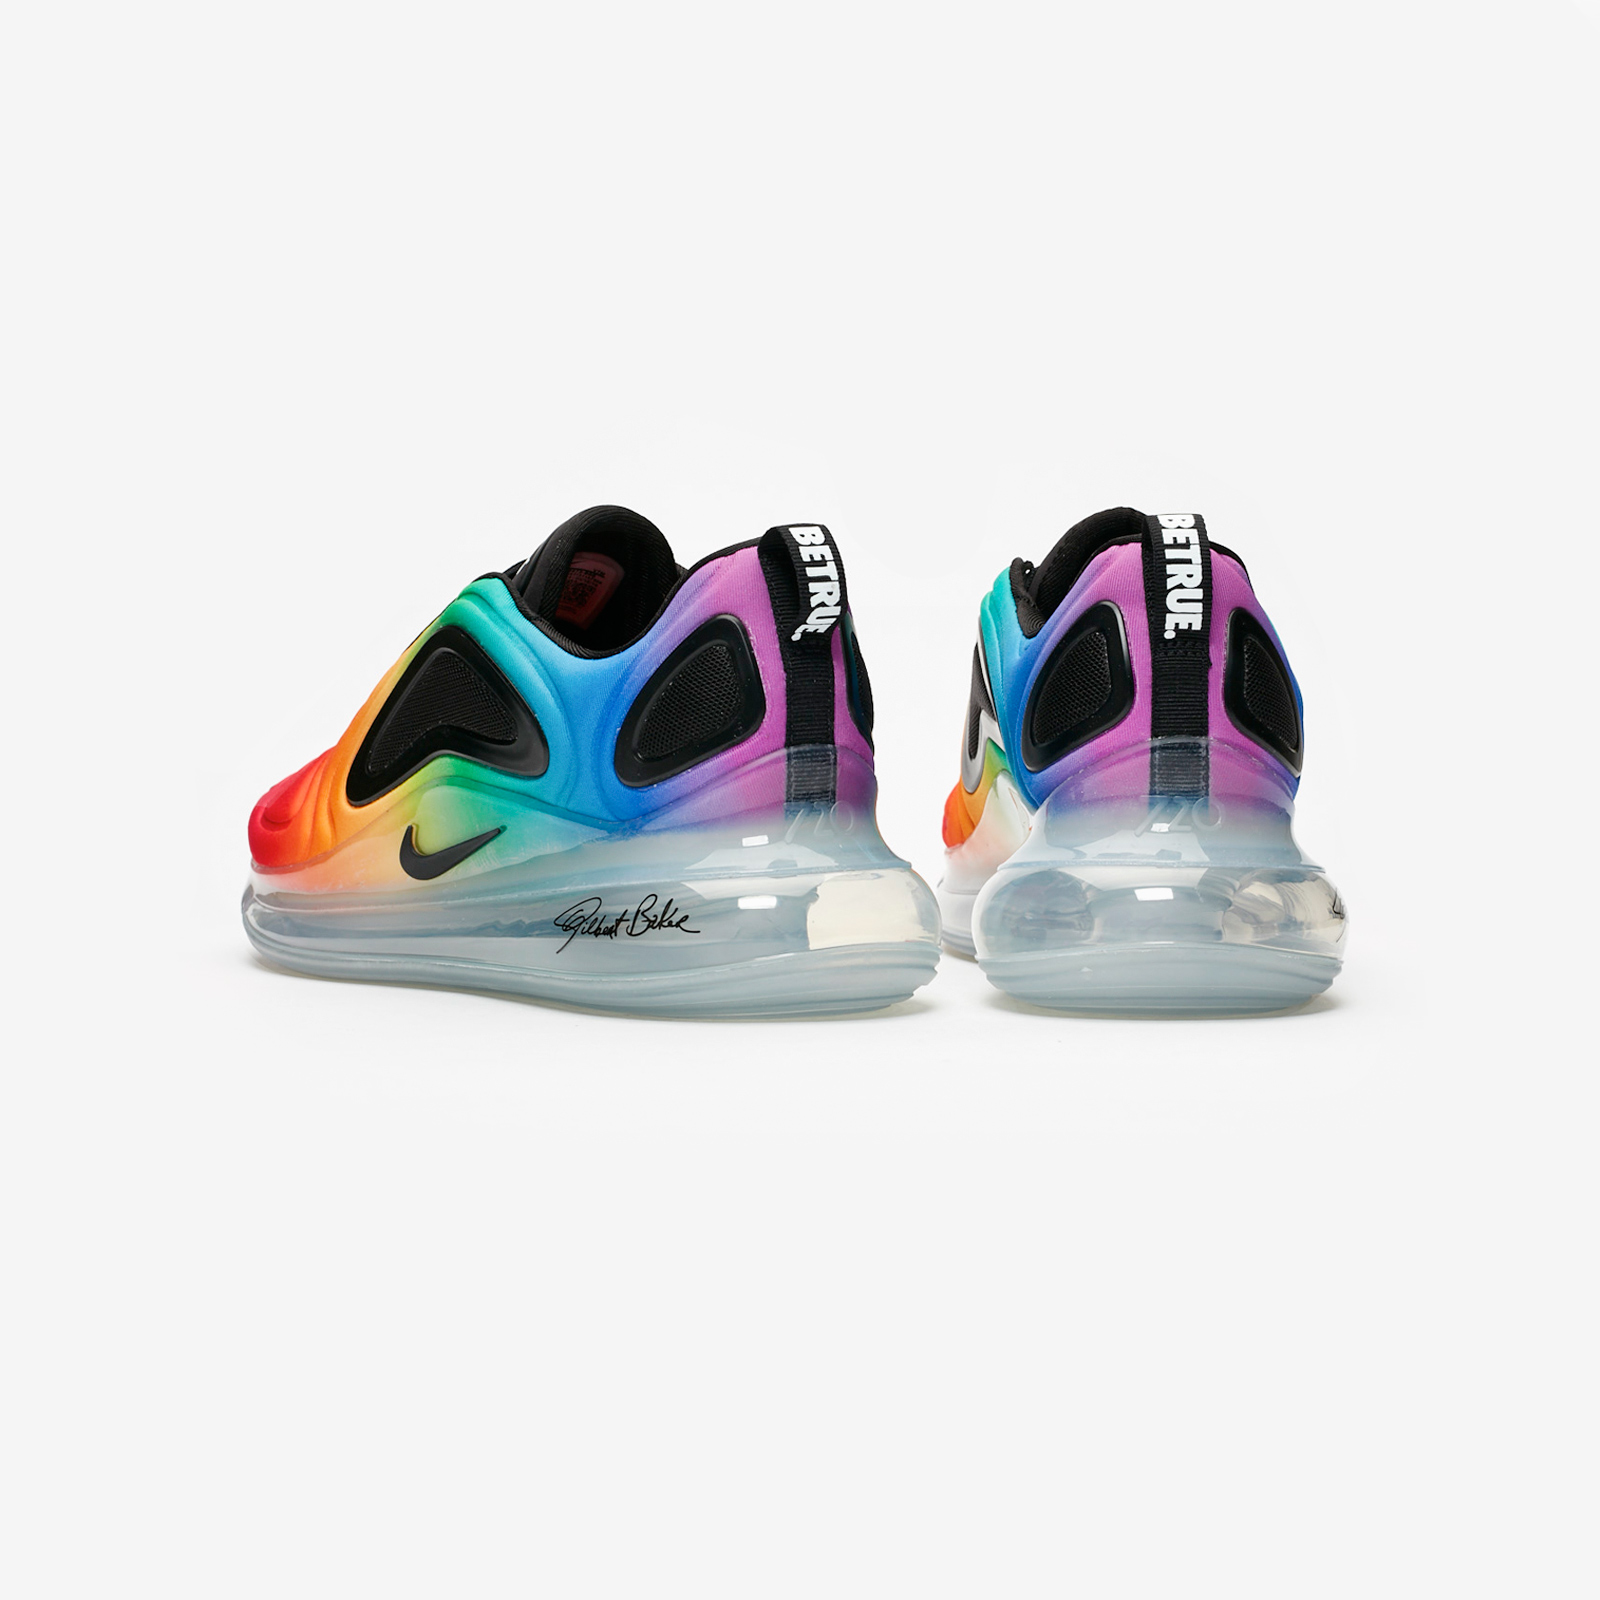 Nike Air Max 720 Betrue Cj5472 900 Sneakersnstuff I